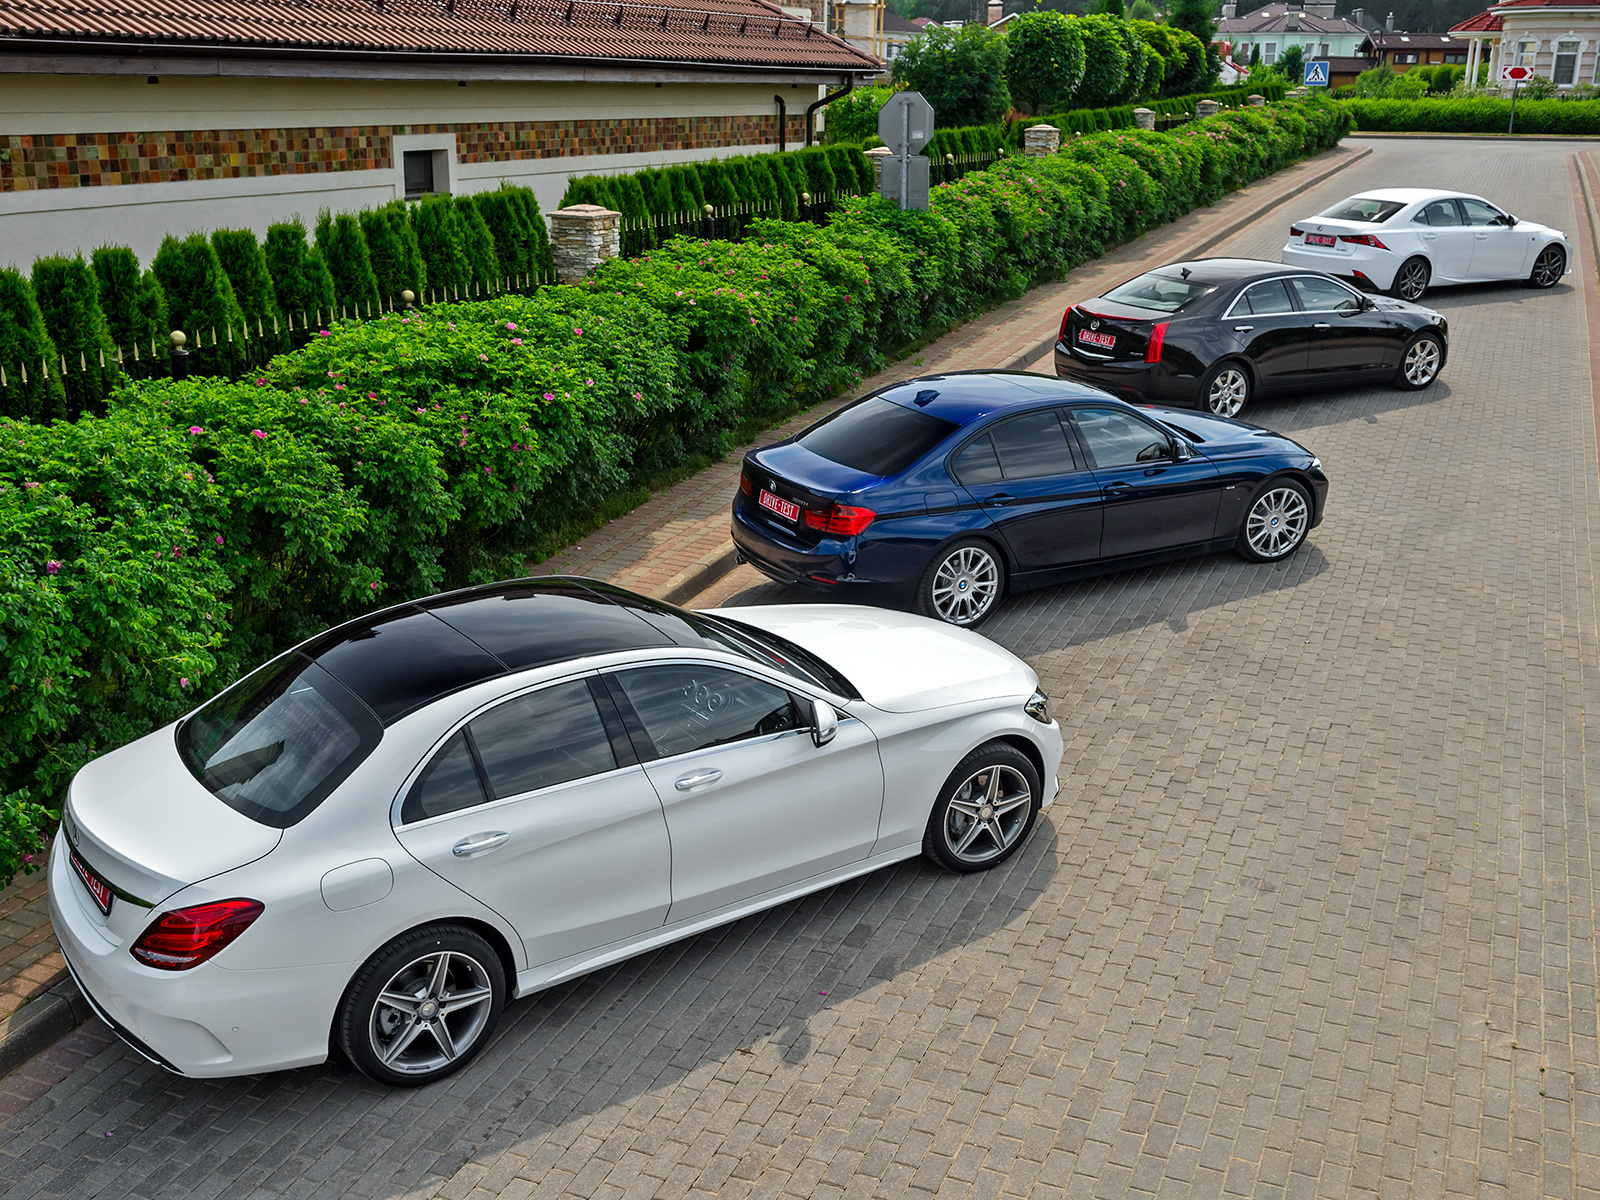 Group road test - Lexus IS 250 F Sport vs new Mercedes C 180 W205 and BMW 320i F30, Cadillac ATS